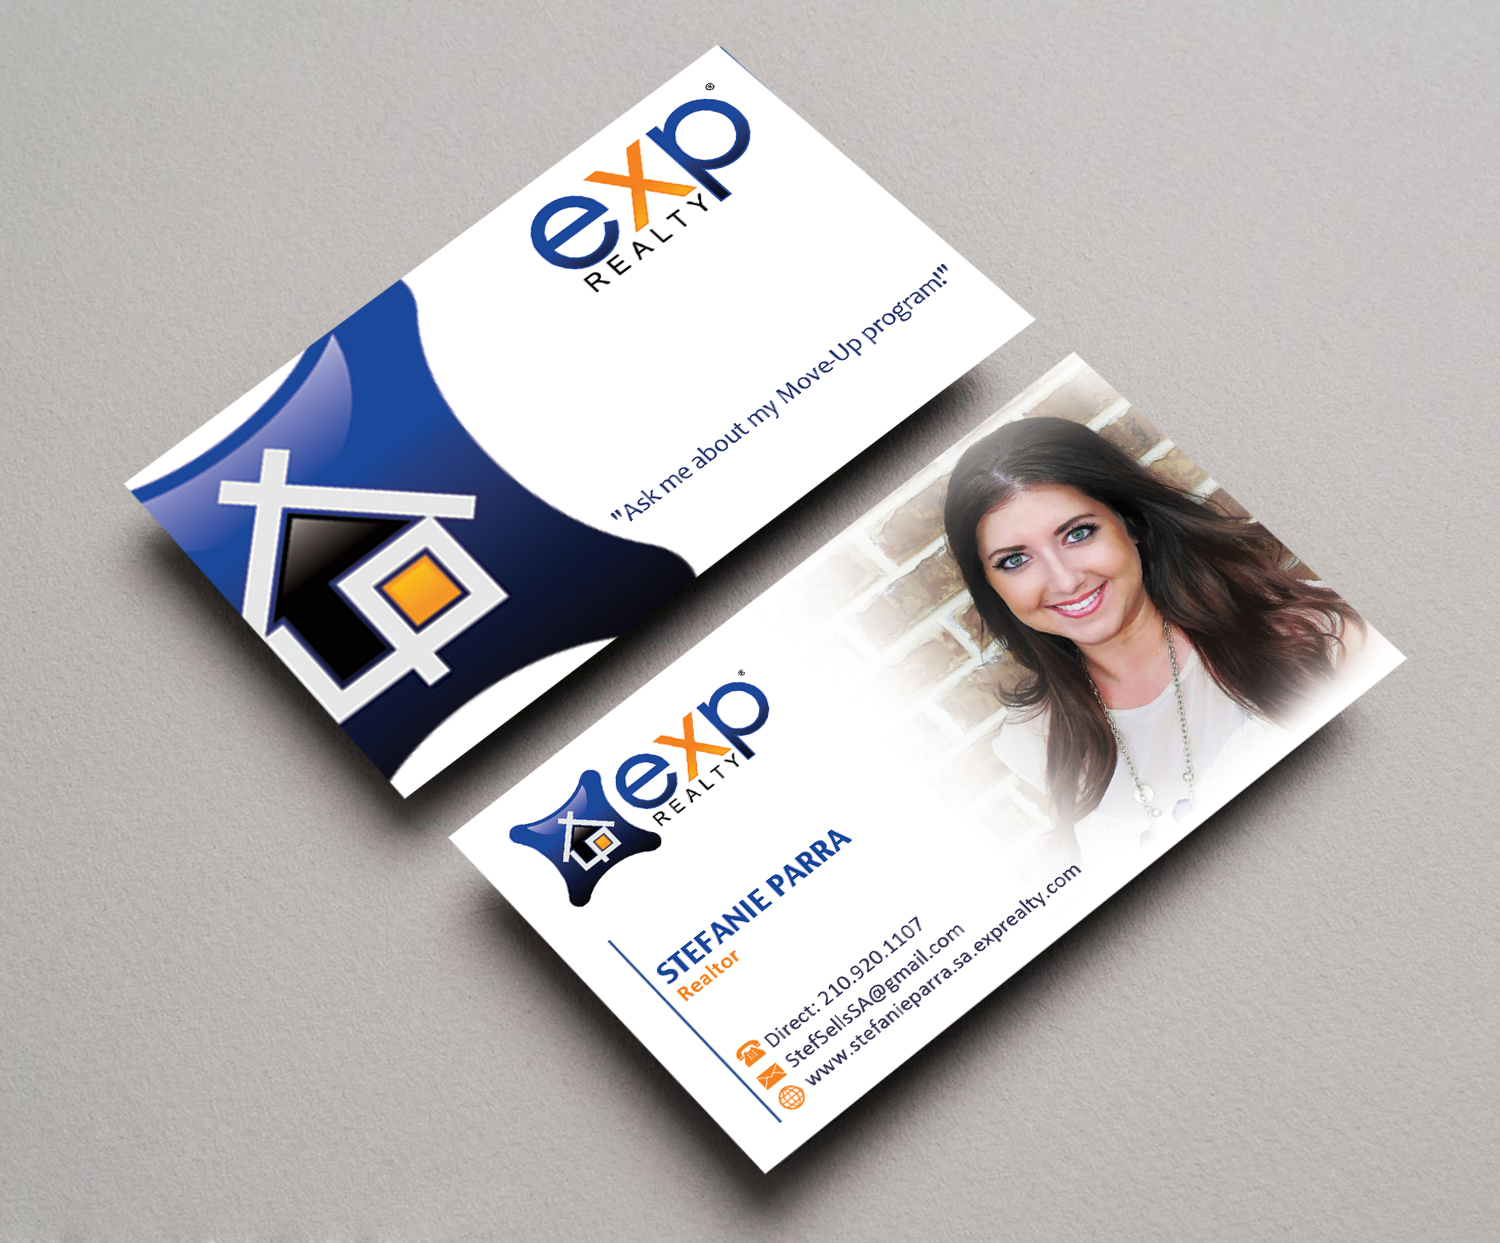 Modern professional real estate agent business card design for a business card design by gayathrik2244 for this project design 12479830 reheart Images